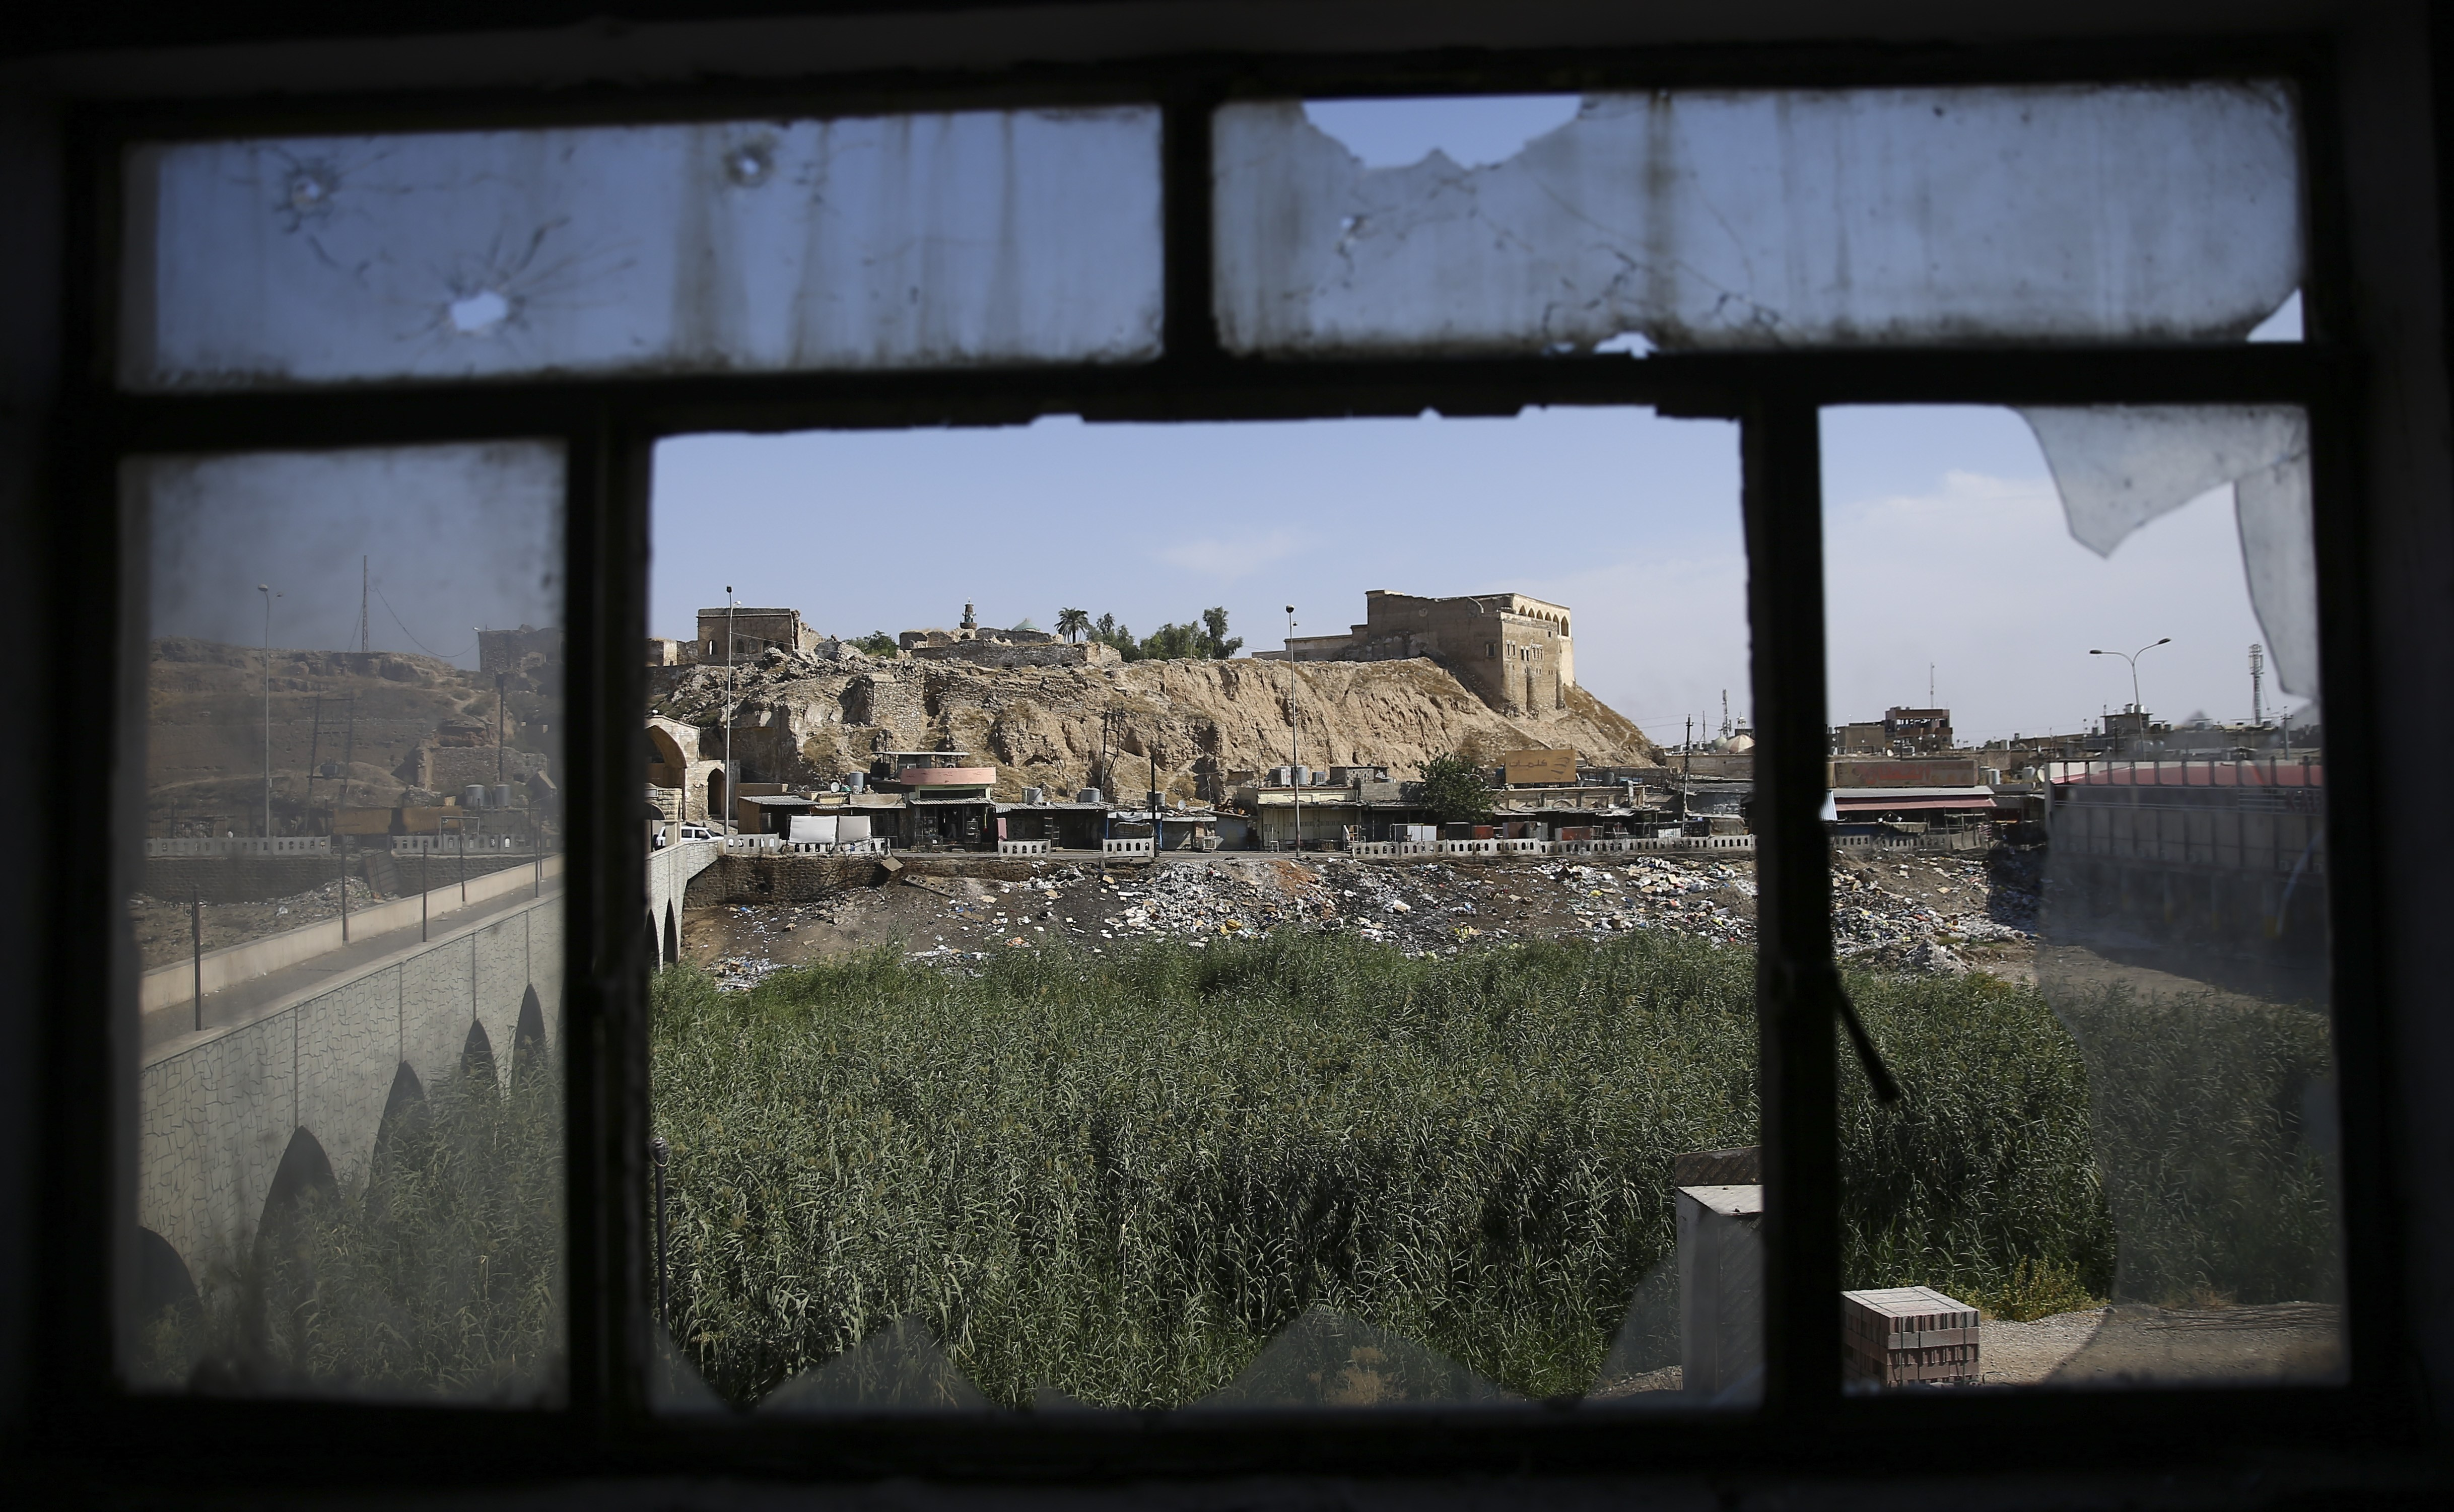 A view of Kirkuk through the broken window of Jihad Hotel, previously used as a base by Daesh terrorists, in Kirkuk, Iraq on Oct. 22, 2016.